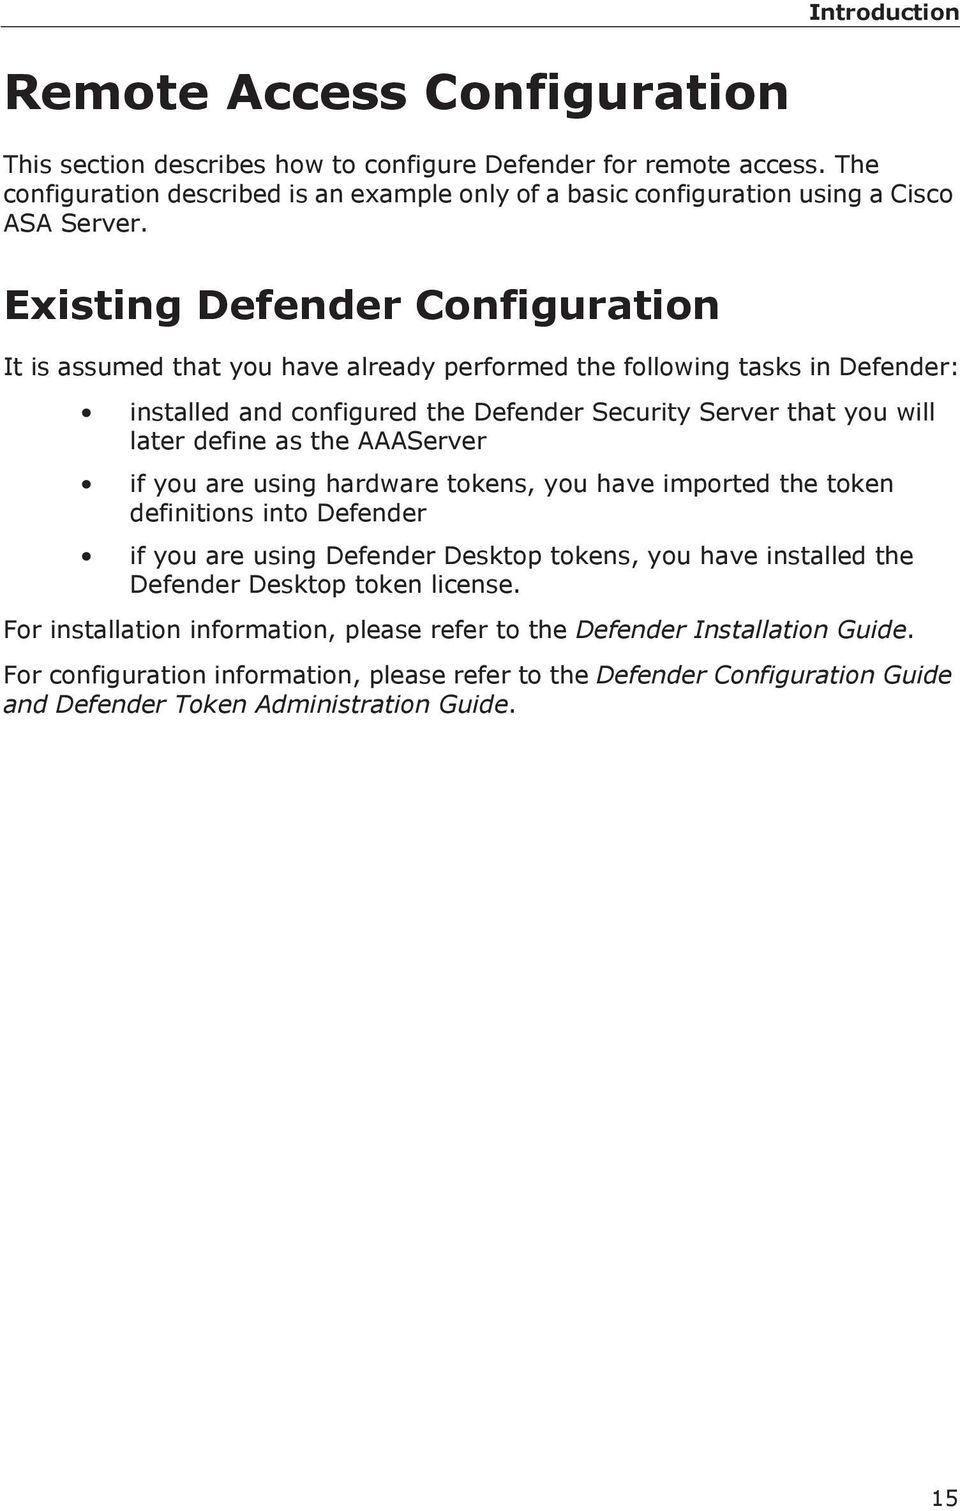 Existing Defender Configuration It is assumed that you have already performed the following tasks in Defender: installed and configured the Defender Security Server that you will later define as the